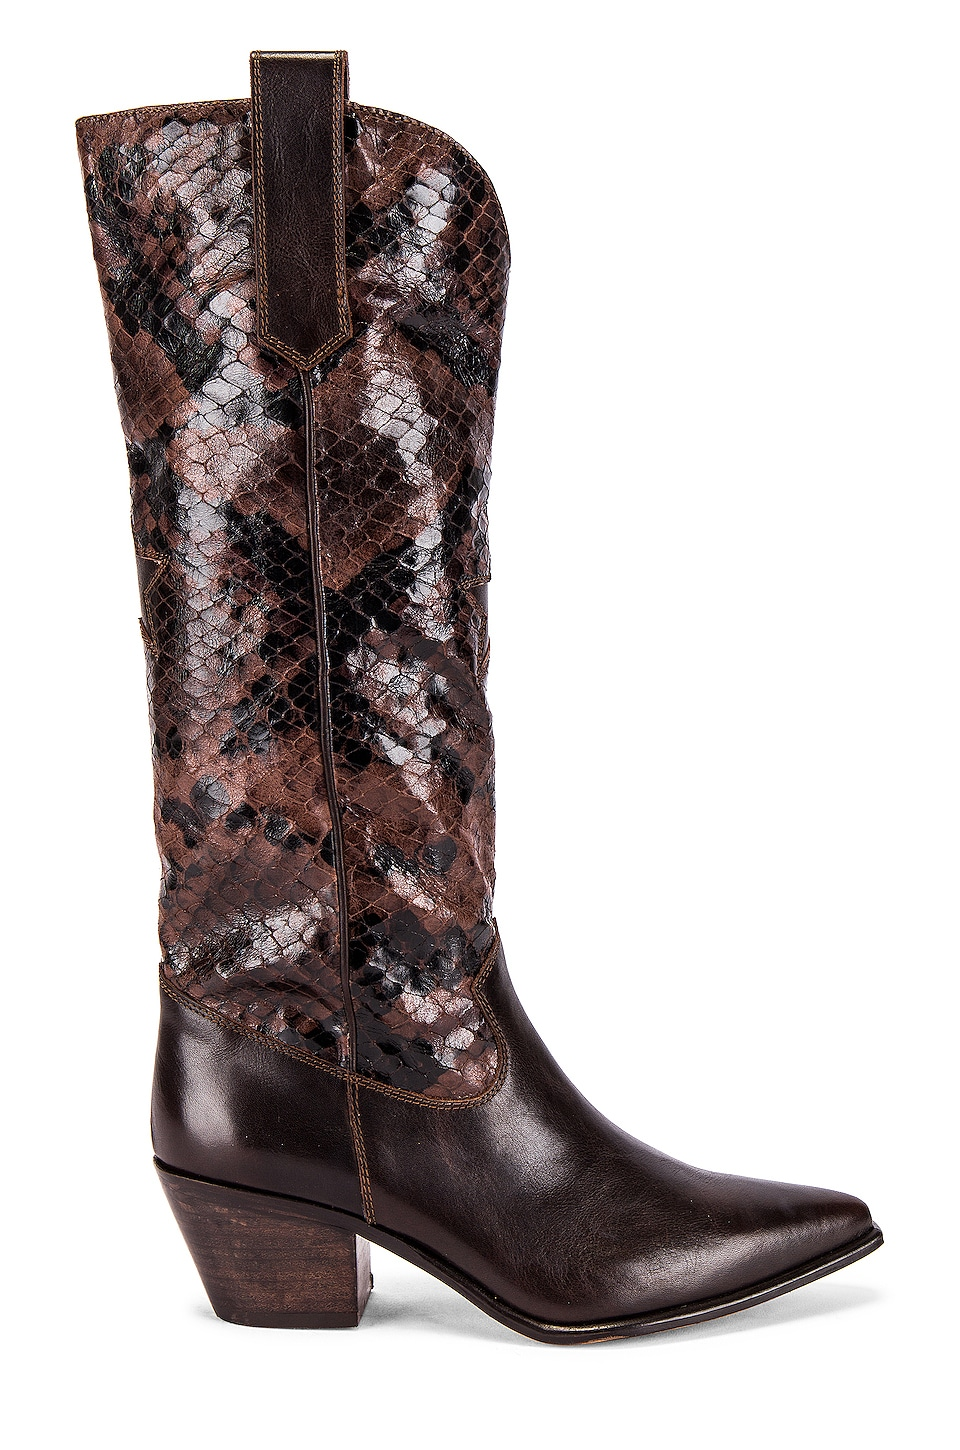 Seychelles SEY Admirable Boot in Brown Leather & Python